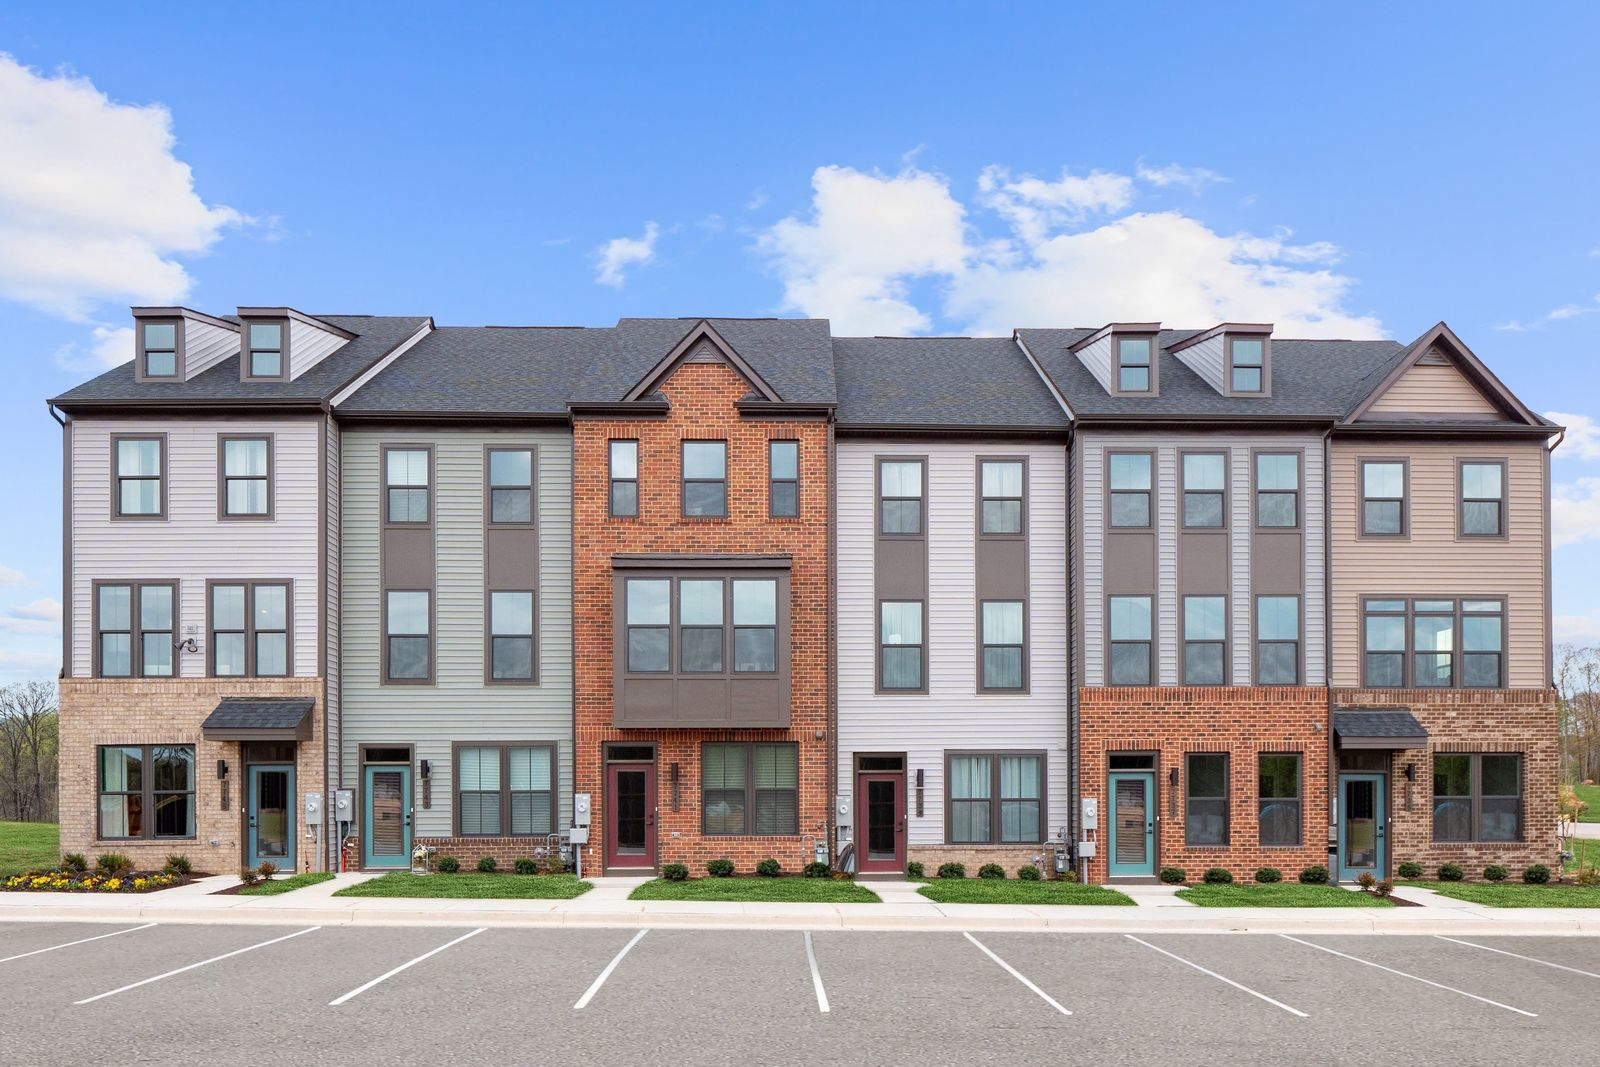 Become a VIP at Tanyard Shores!:Join our VIP list todayfor the first opportunity to get exclusive details and purchase your new home at Tanyard Shores Townhomes!